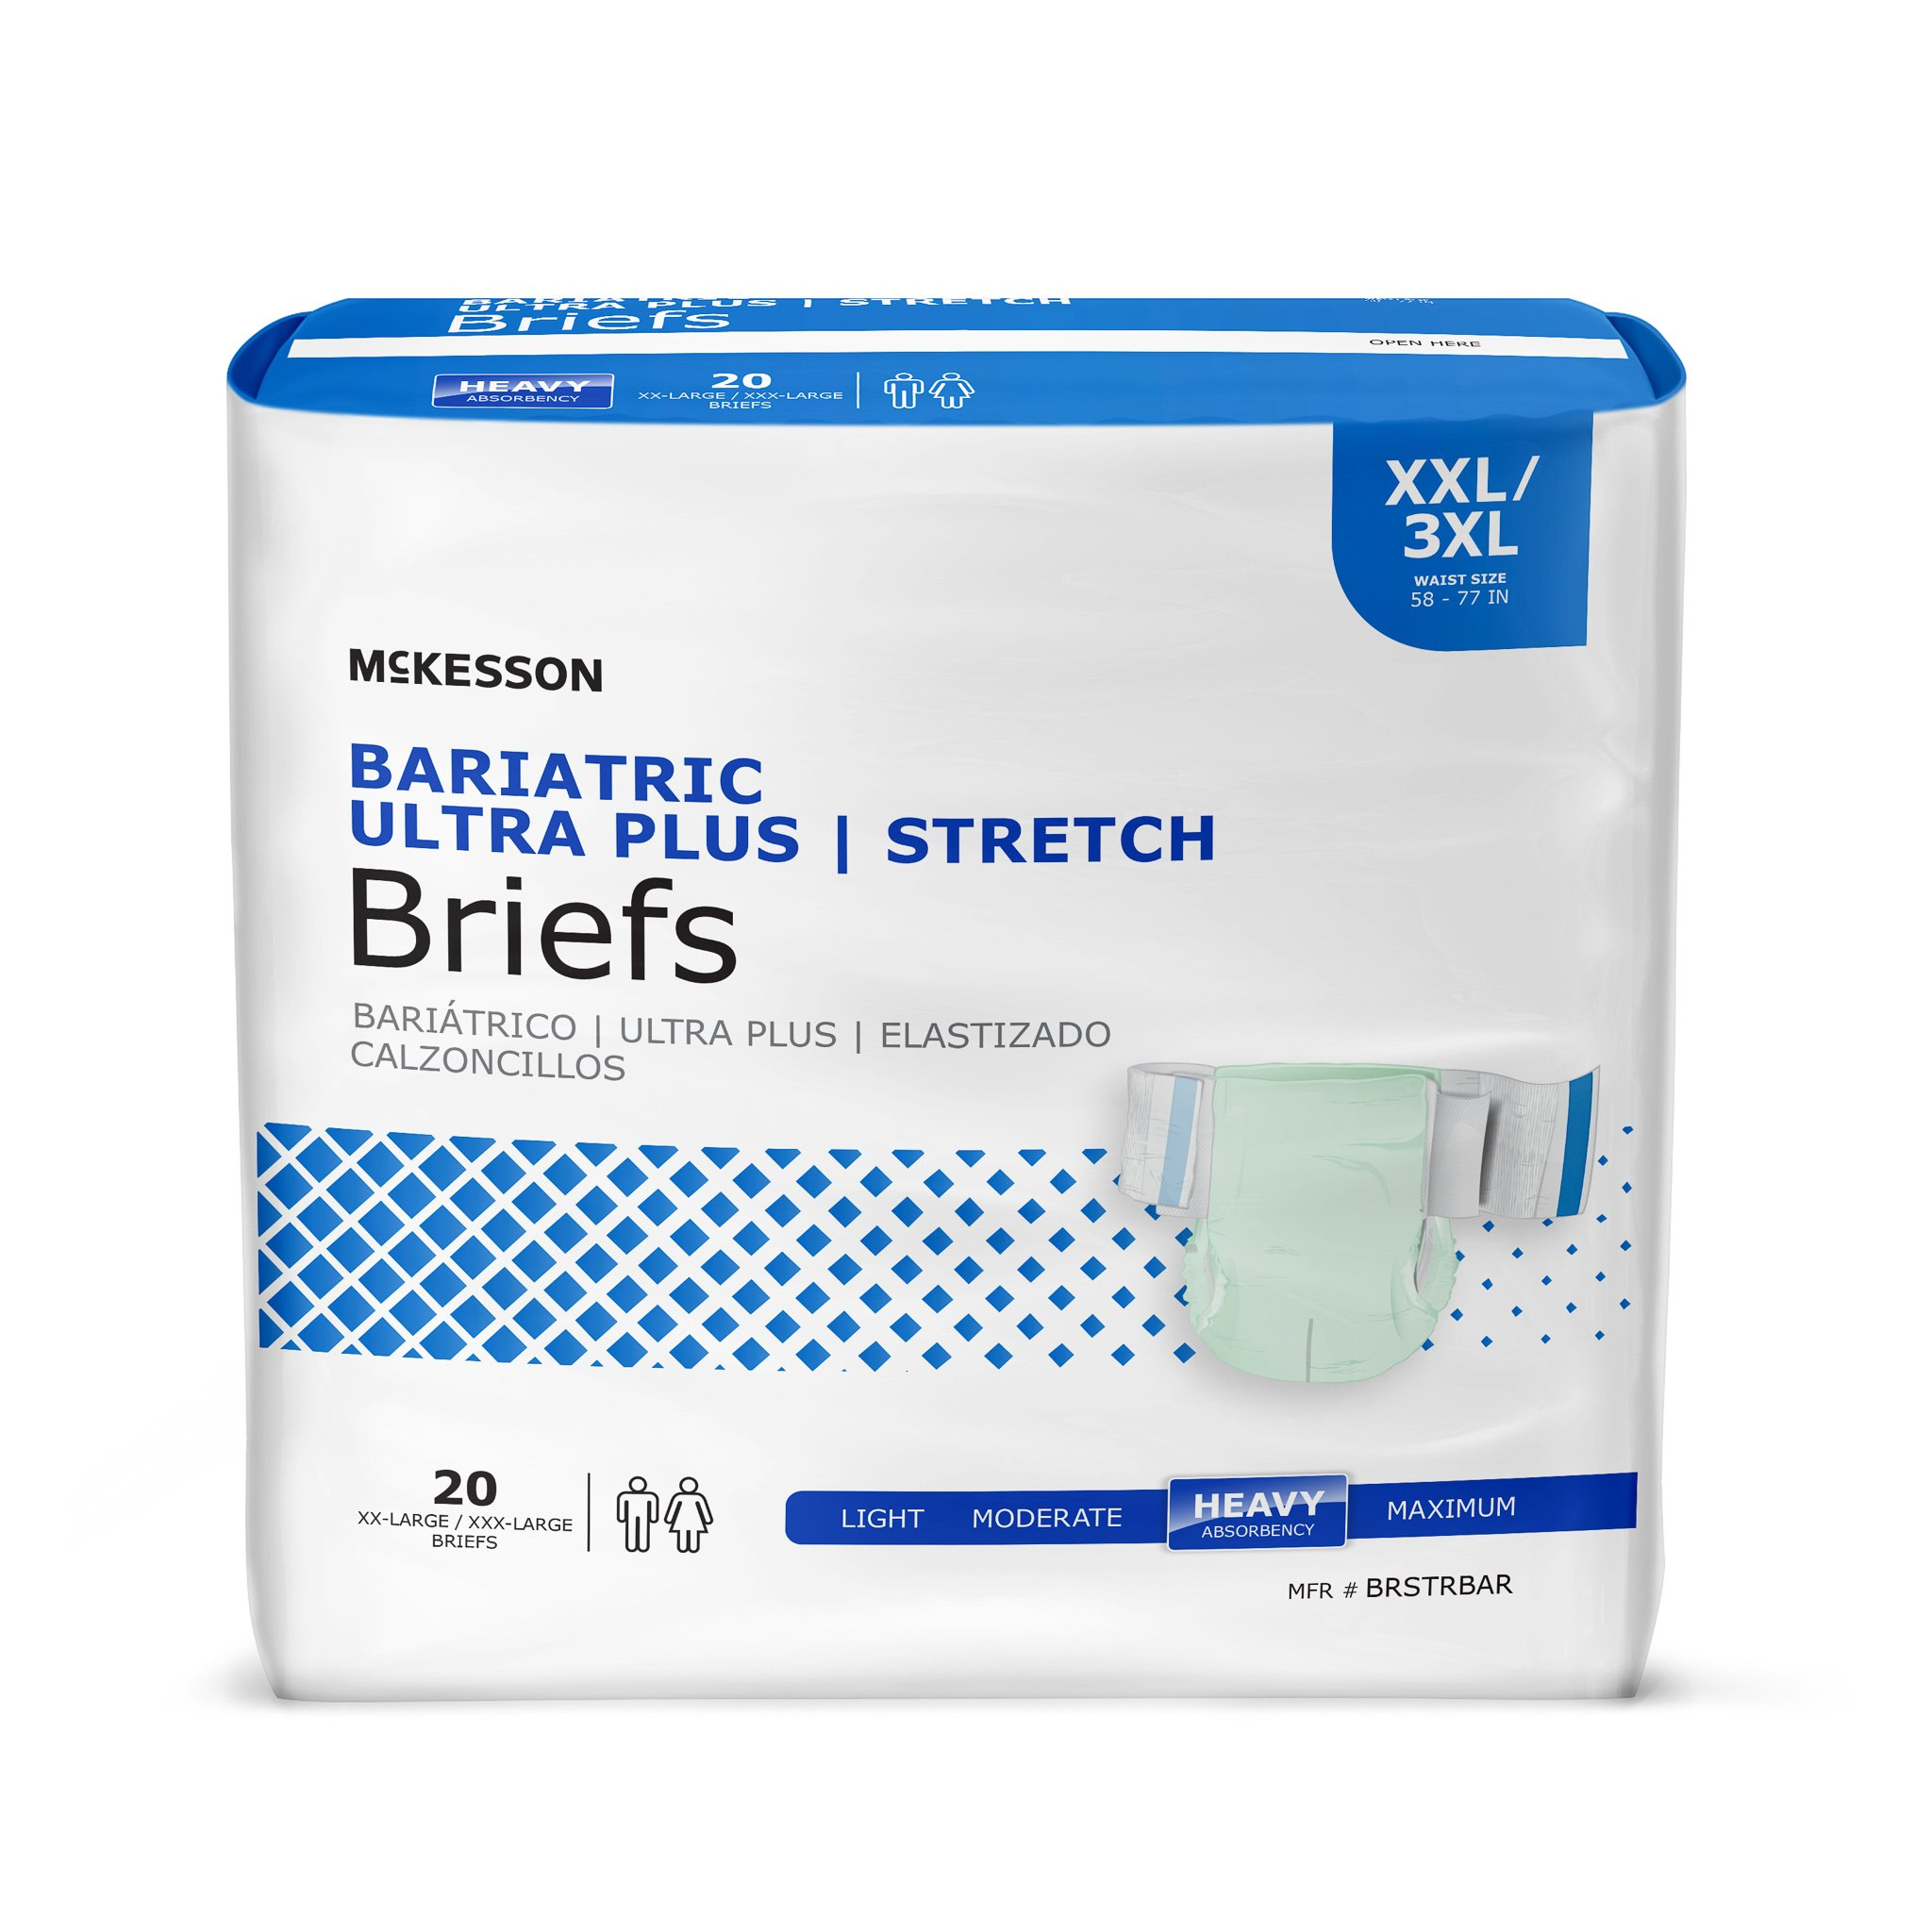 """McKesson Bariatric Ultra Plus Stretch Brief Adult Diapers with Tabs, Heavy Absorbency, BRSTRBAR, Light Green - 2XL/3XL (58-77"""") - Case of 80 (4 Bags)"""